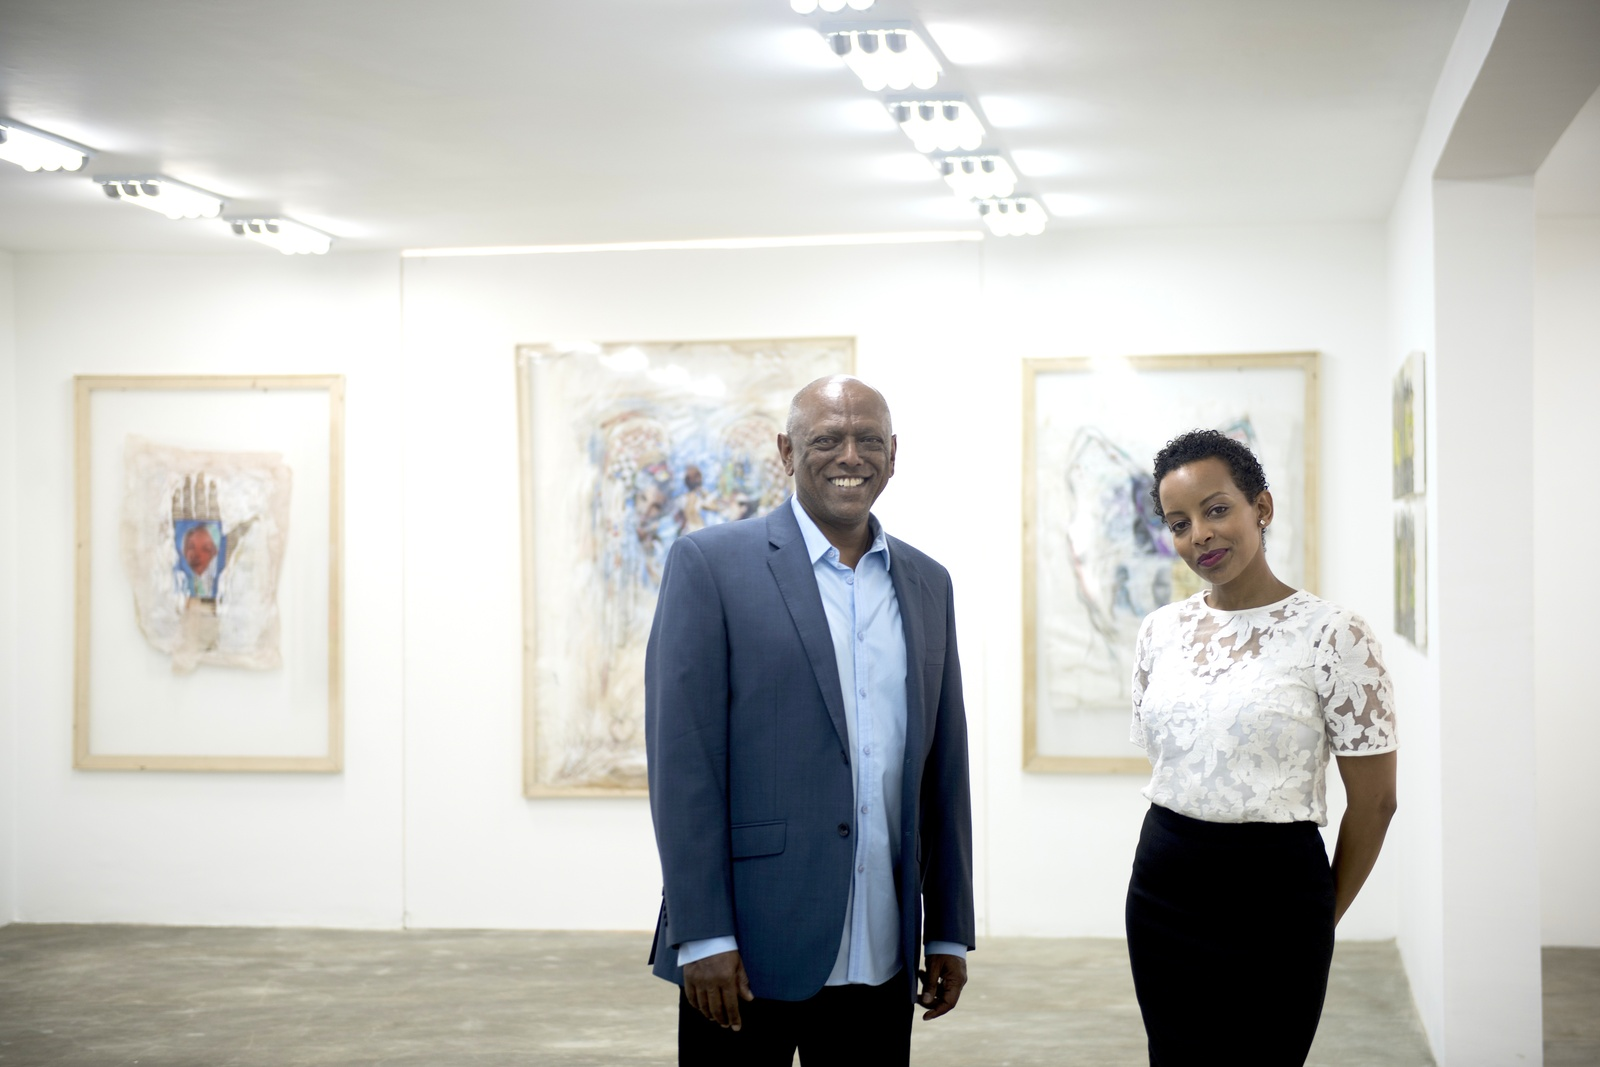 Addis Fine Art Founders Mesai Haileleul and Rakeb Sile.